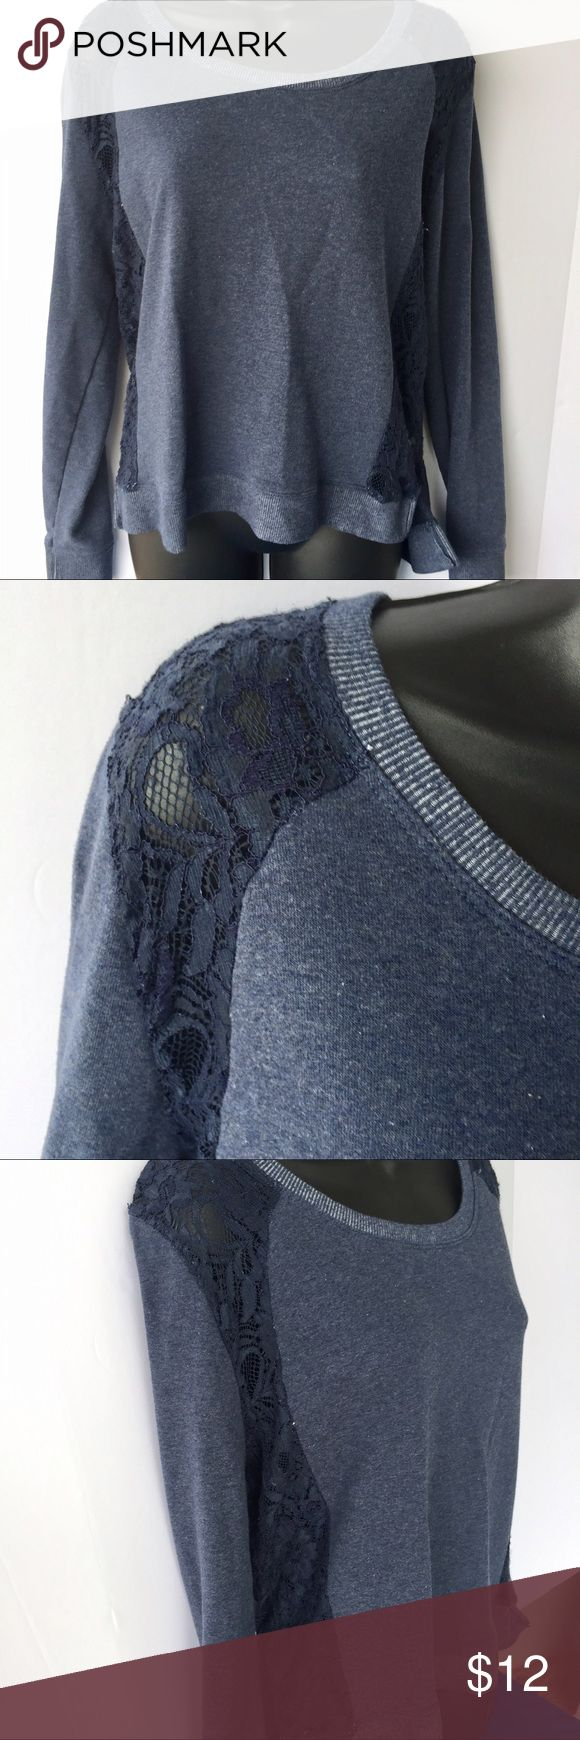 """Nine West Vintage America sweatshirt with lace Size petite M, denim color, Nine West Vintage America pullover, armpit to armpit 21"""" length shoulder to hem 21.5, arm length 26.  Has cute lace around collar and down sides. Casual and comfy, gently worn. I accept most offers, try me! Smoke and pet free home. Nine West Tops Sweatshirts & Hoodies"""